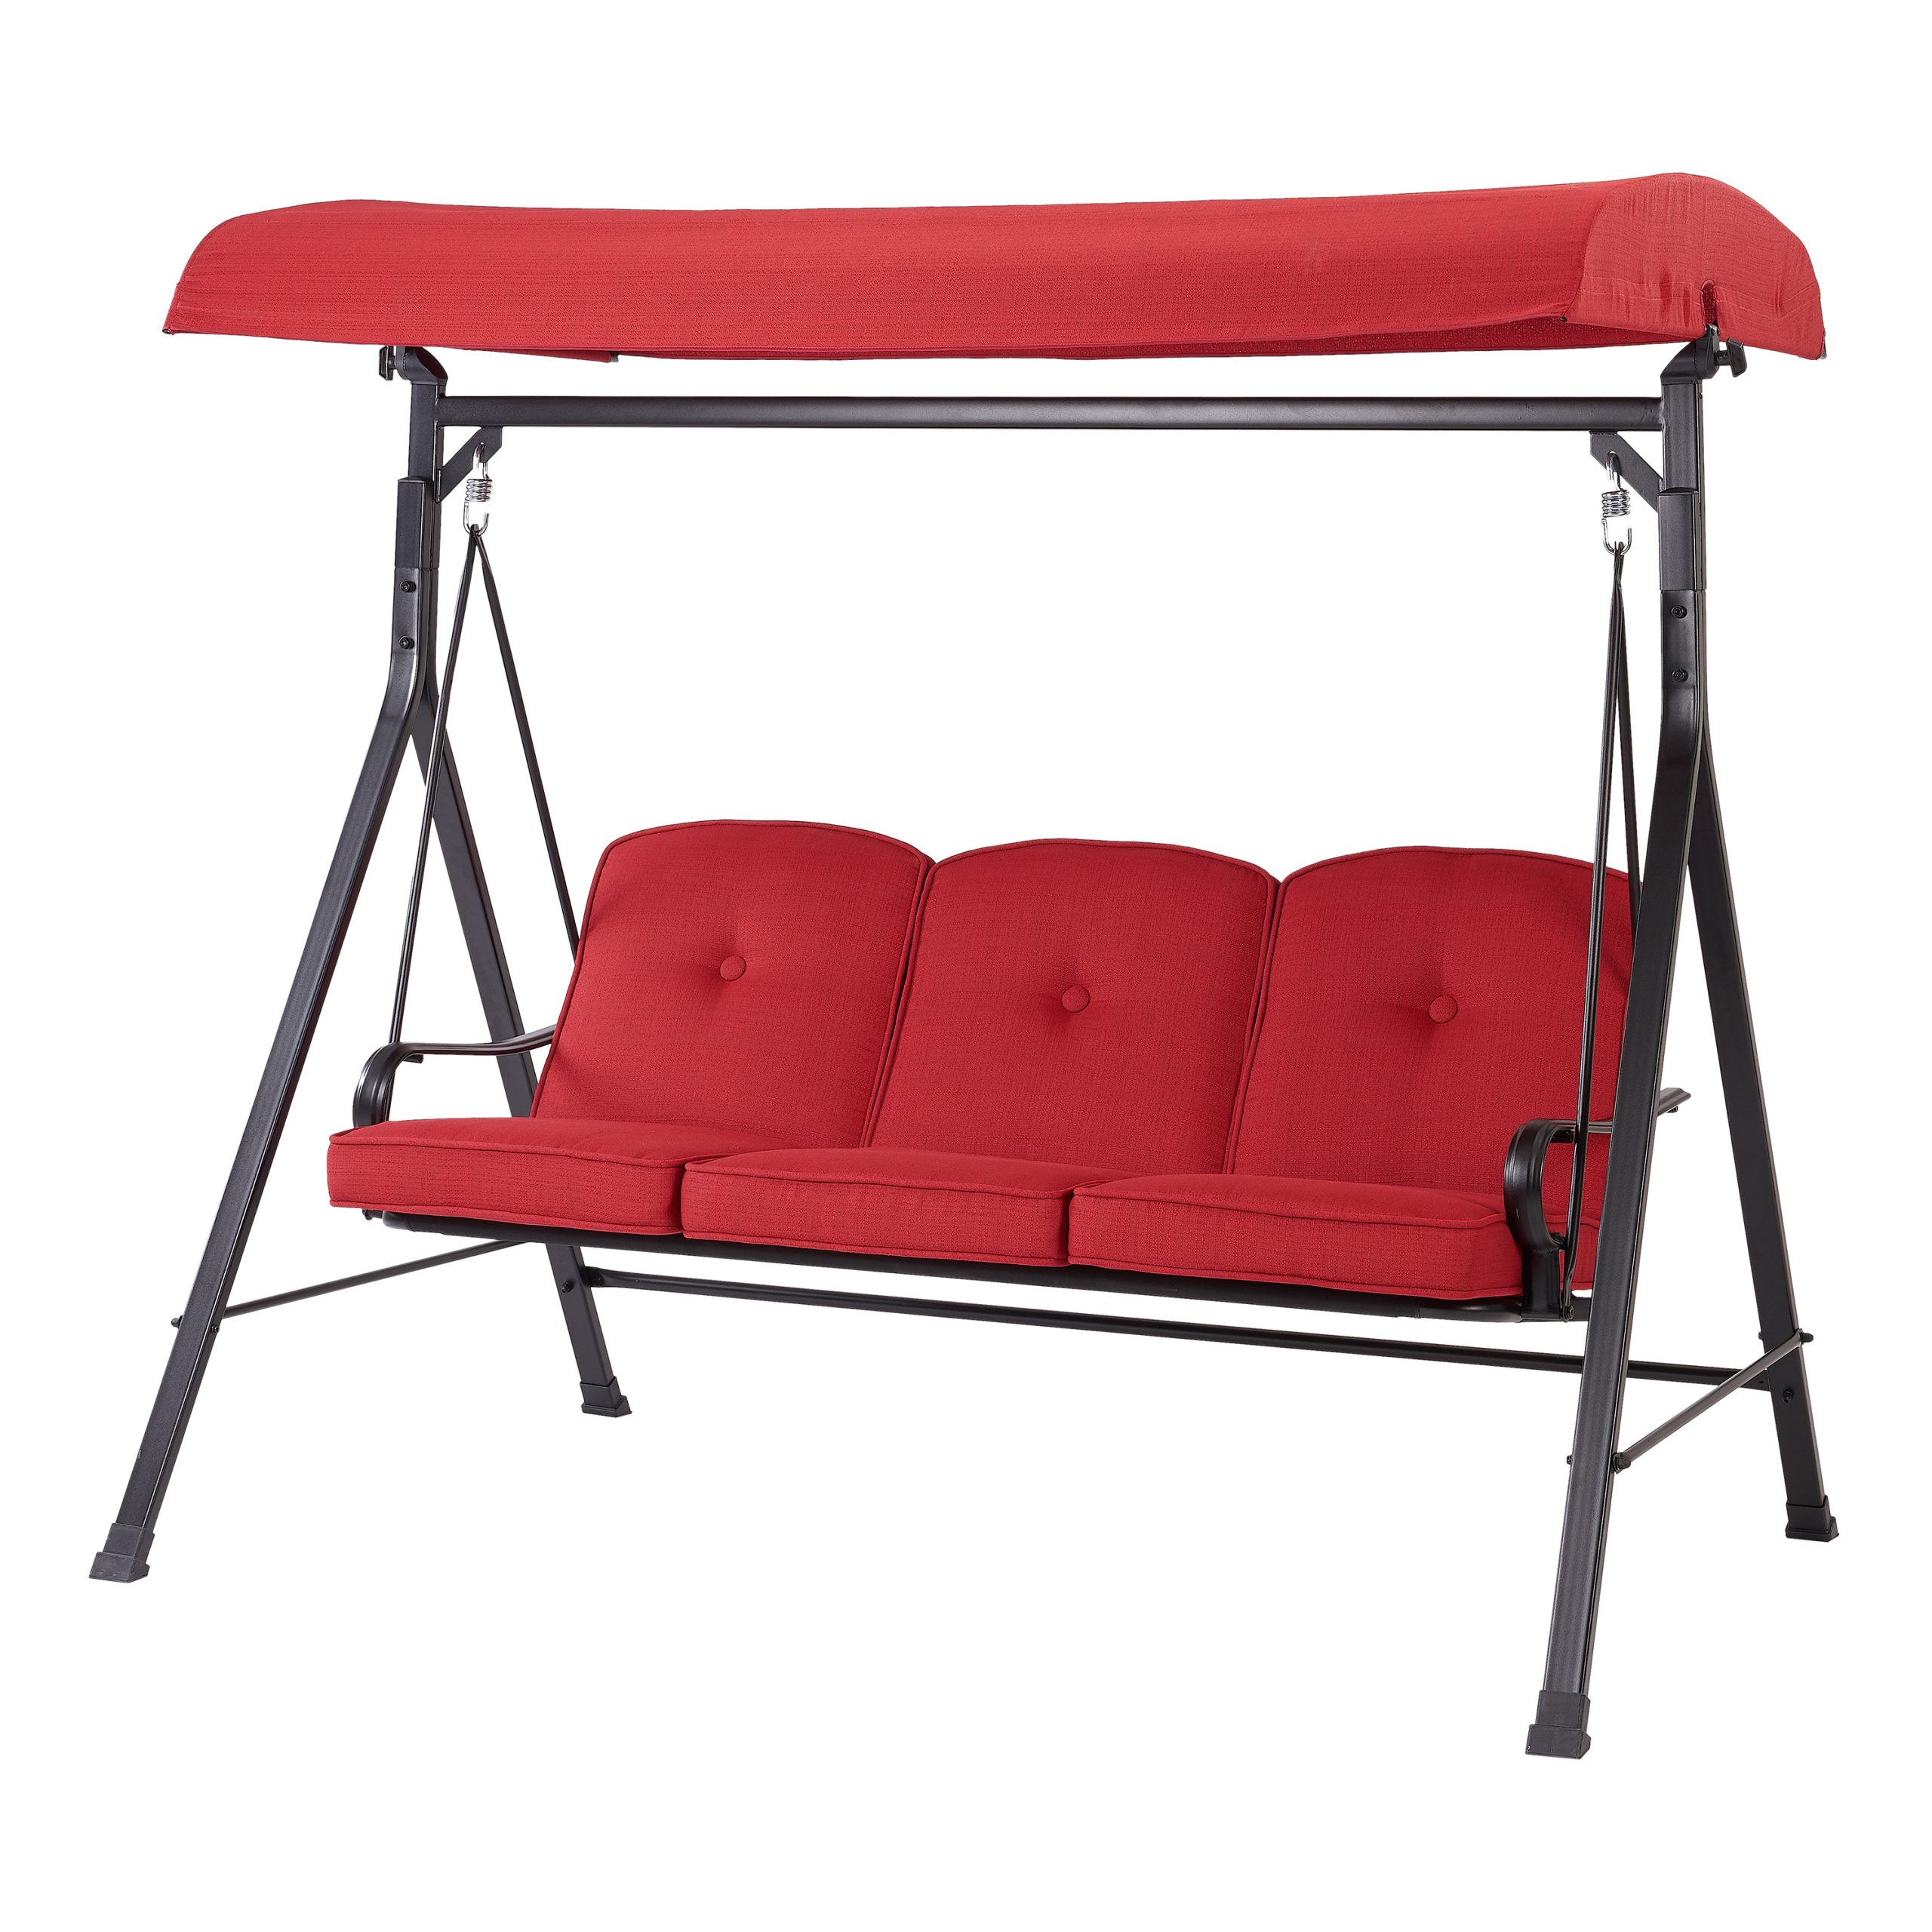 Mainstays Carson Creek Outdoor 3 Seat Porch Swing With Canopy, Red – Walmart With Regard To Porch Swings With Canopy (View 17 of 25)